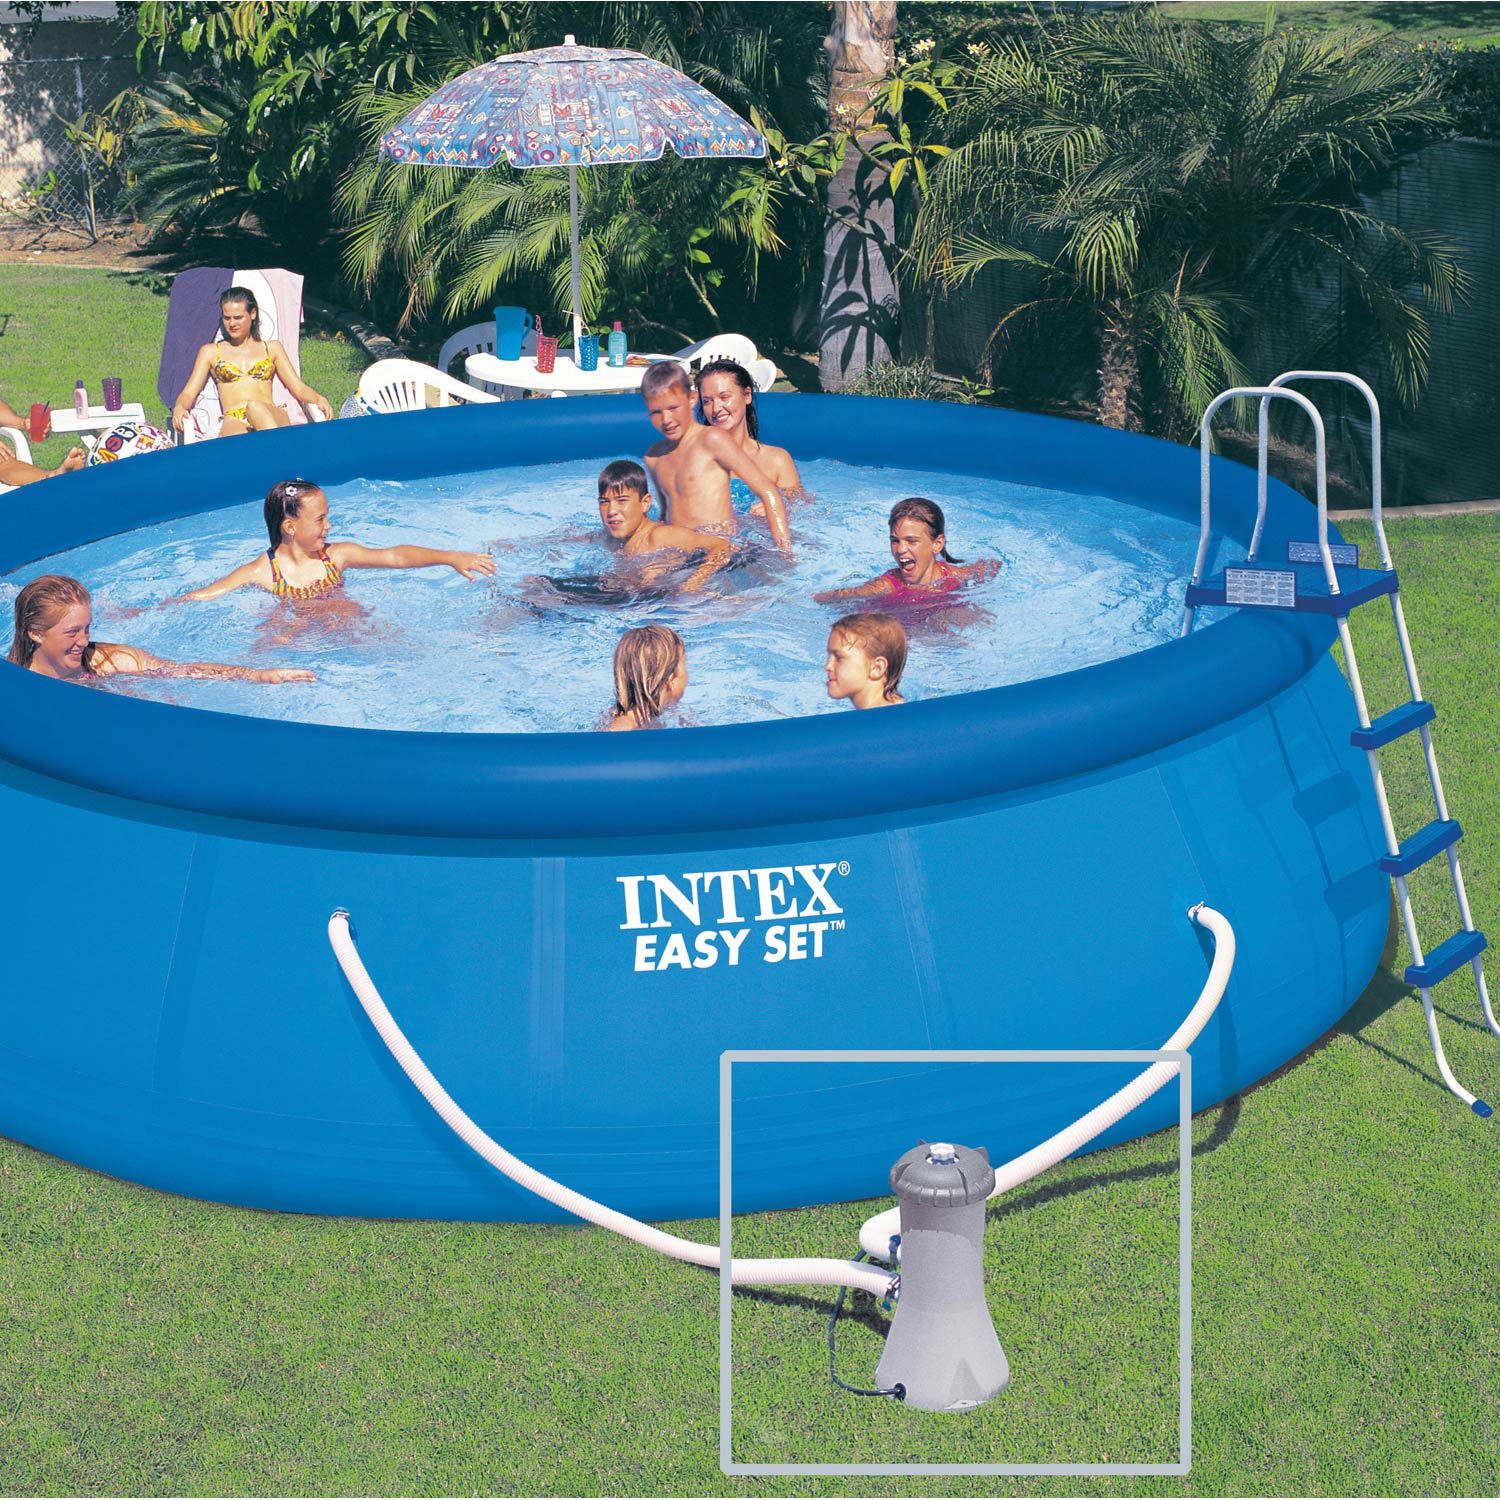 Piscine hors-sol autoportante gonflable Easy set INTEX ...